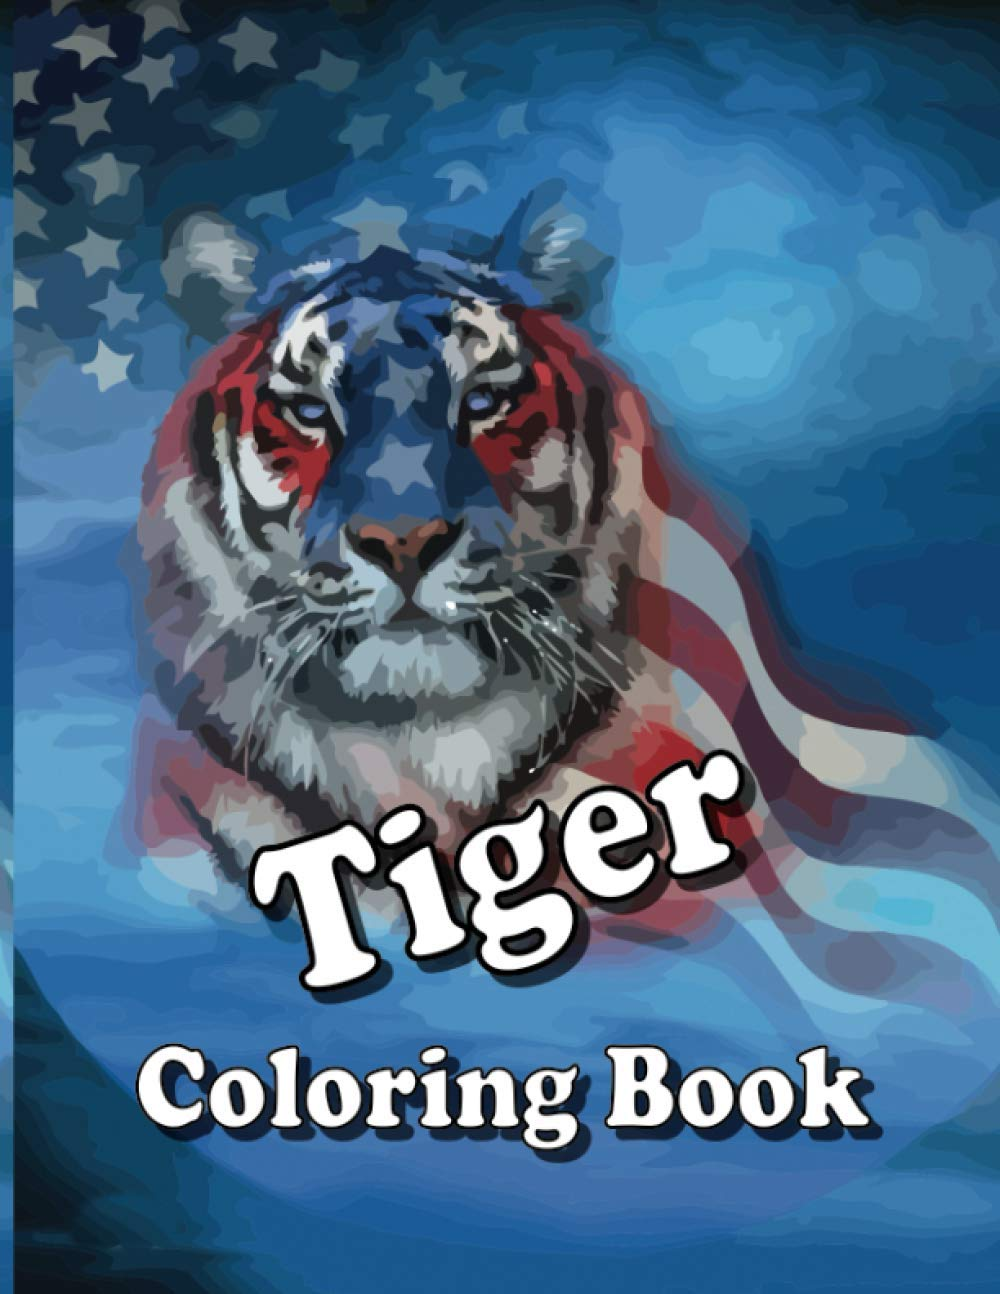 Tiger Coloring Book An Adults Tiger Coloring Book Design For Stress Relief And Relaxations Tiger Adult Coloring Books For Man Women Sheikh Sohel 9798568855286 Amazon Com Books